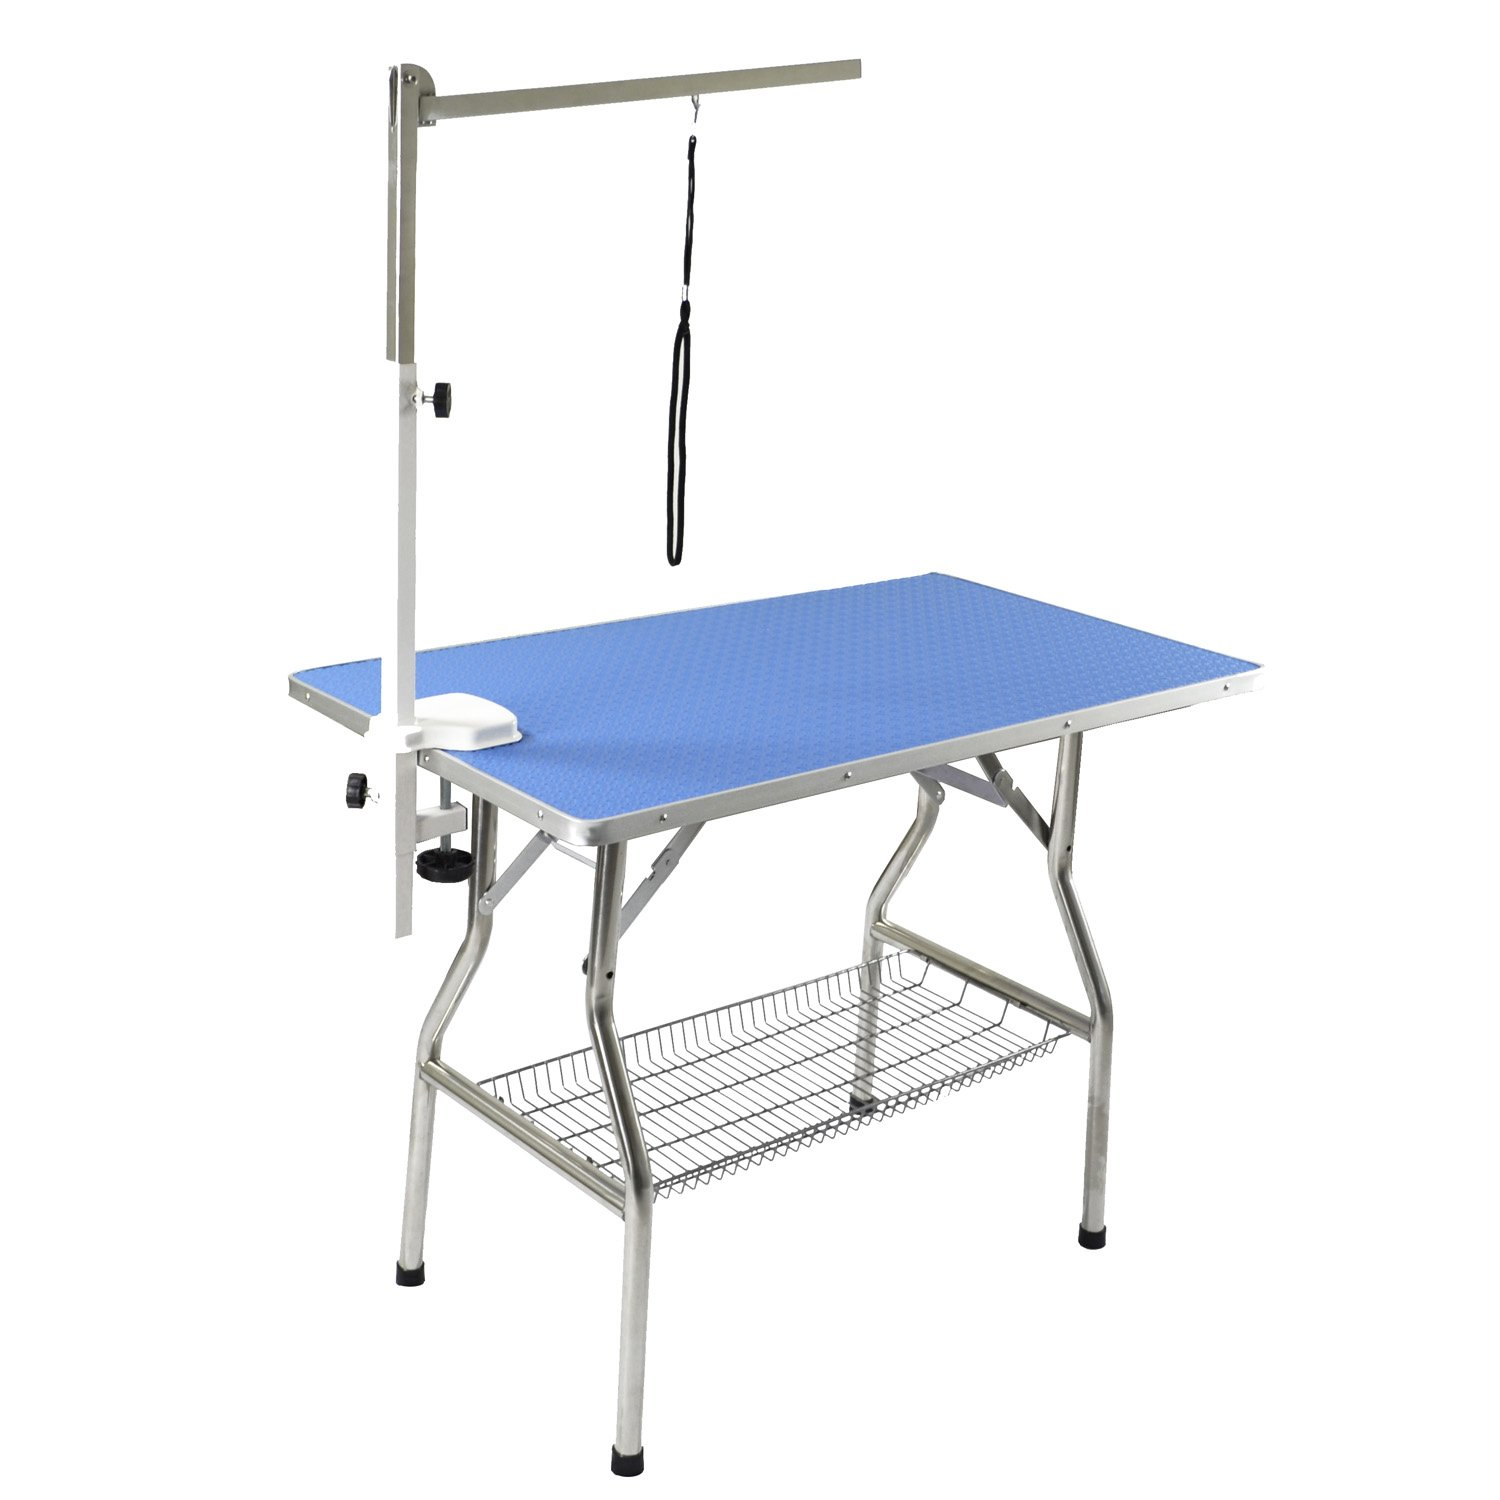 Flying Pig 38'' Medium Size Heavy Duty Stainless Steel Frame Foldable Dog Pet Grooming Table (38x22, Blue) by Flying Pig Grooming